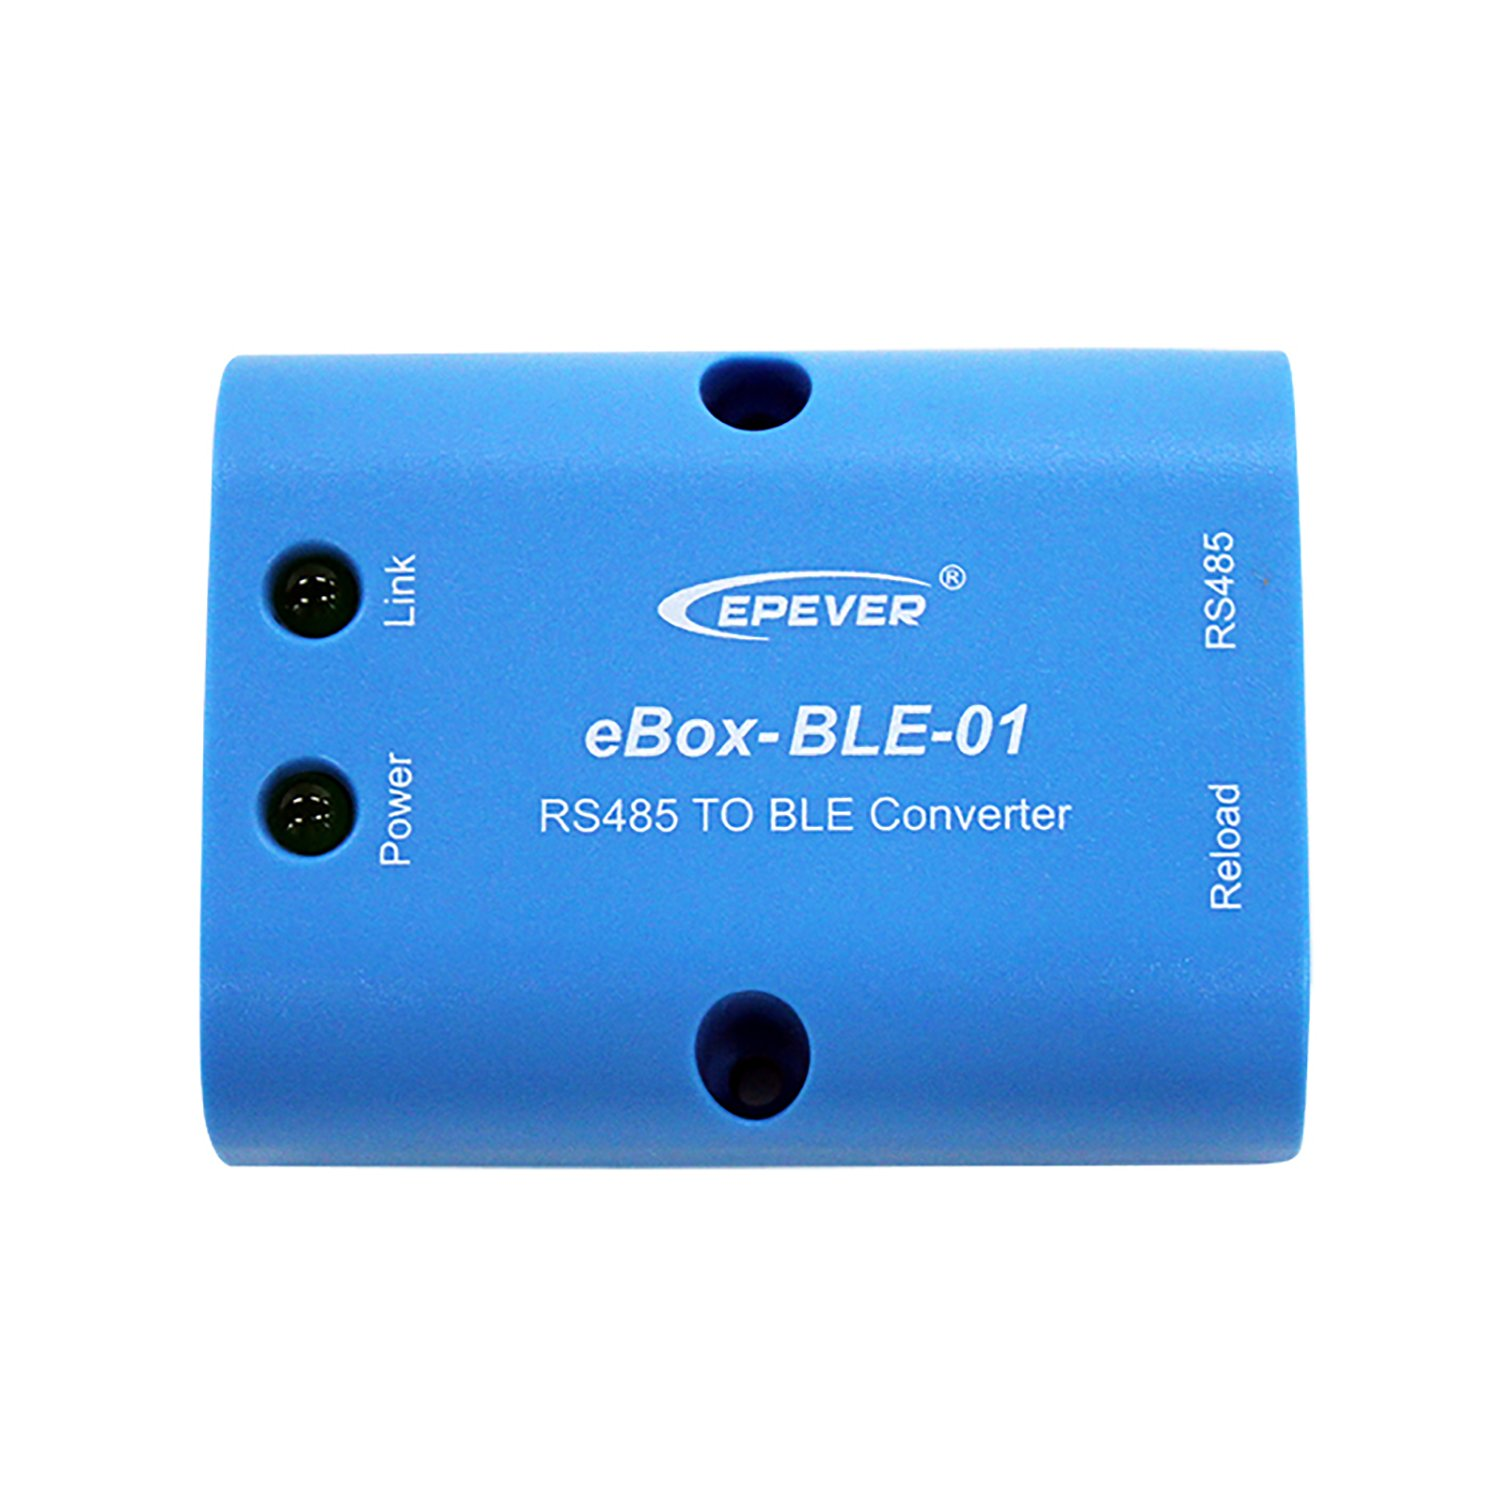 EPEVER eBox-BLE-01 RS485 to Bluetooth Adapter